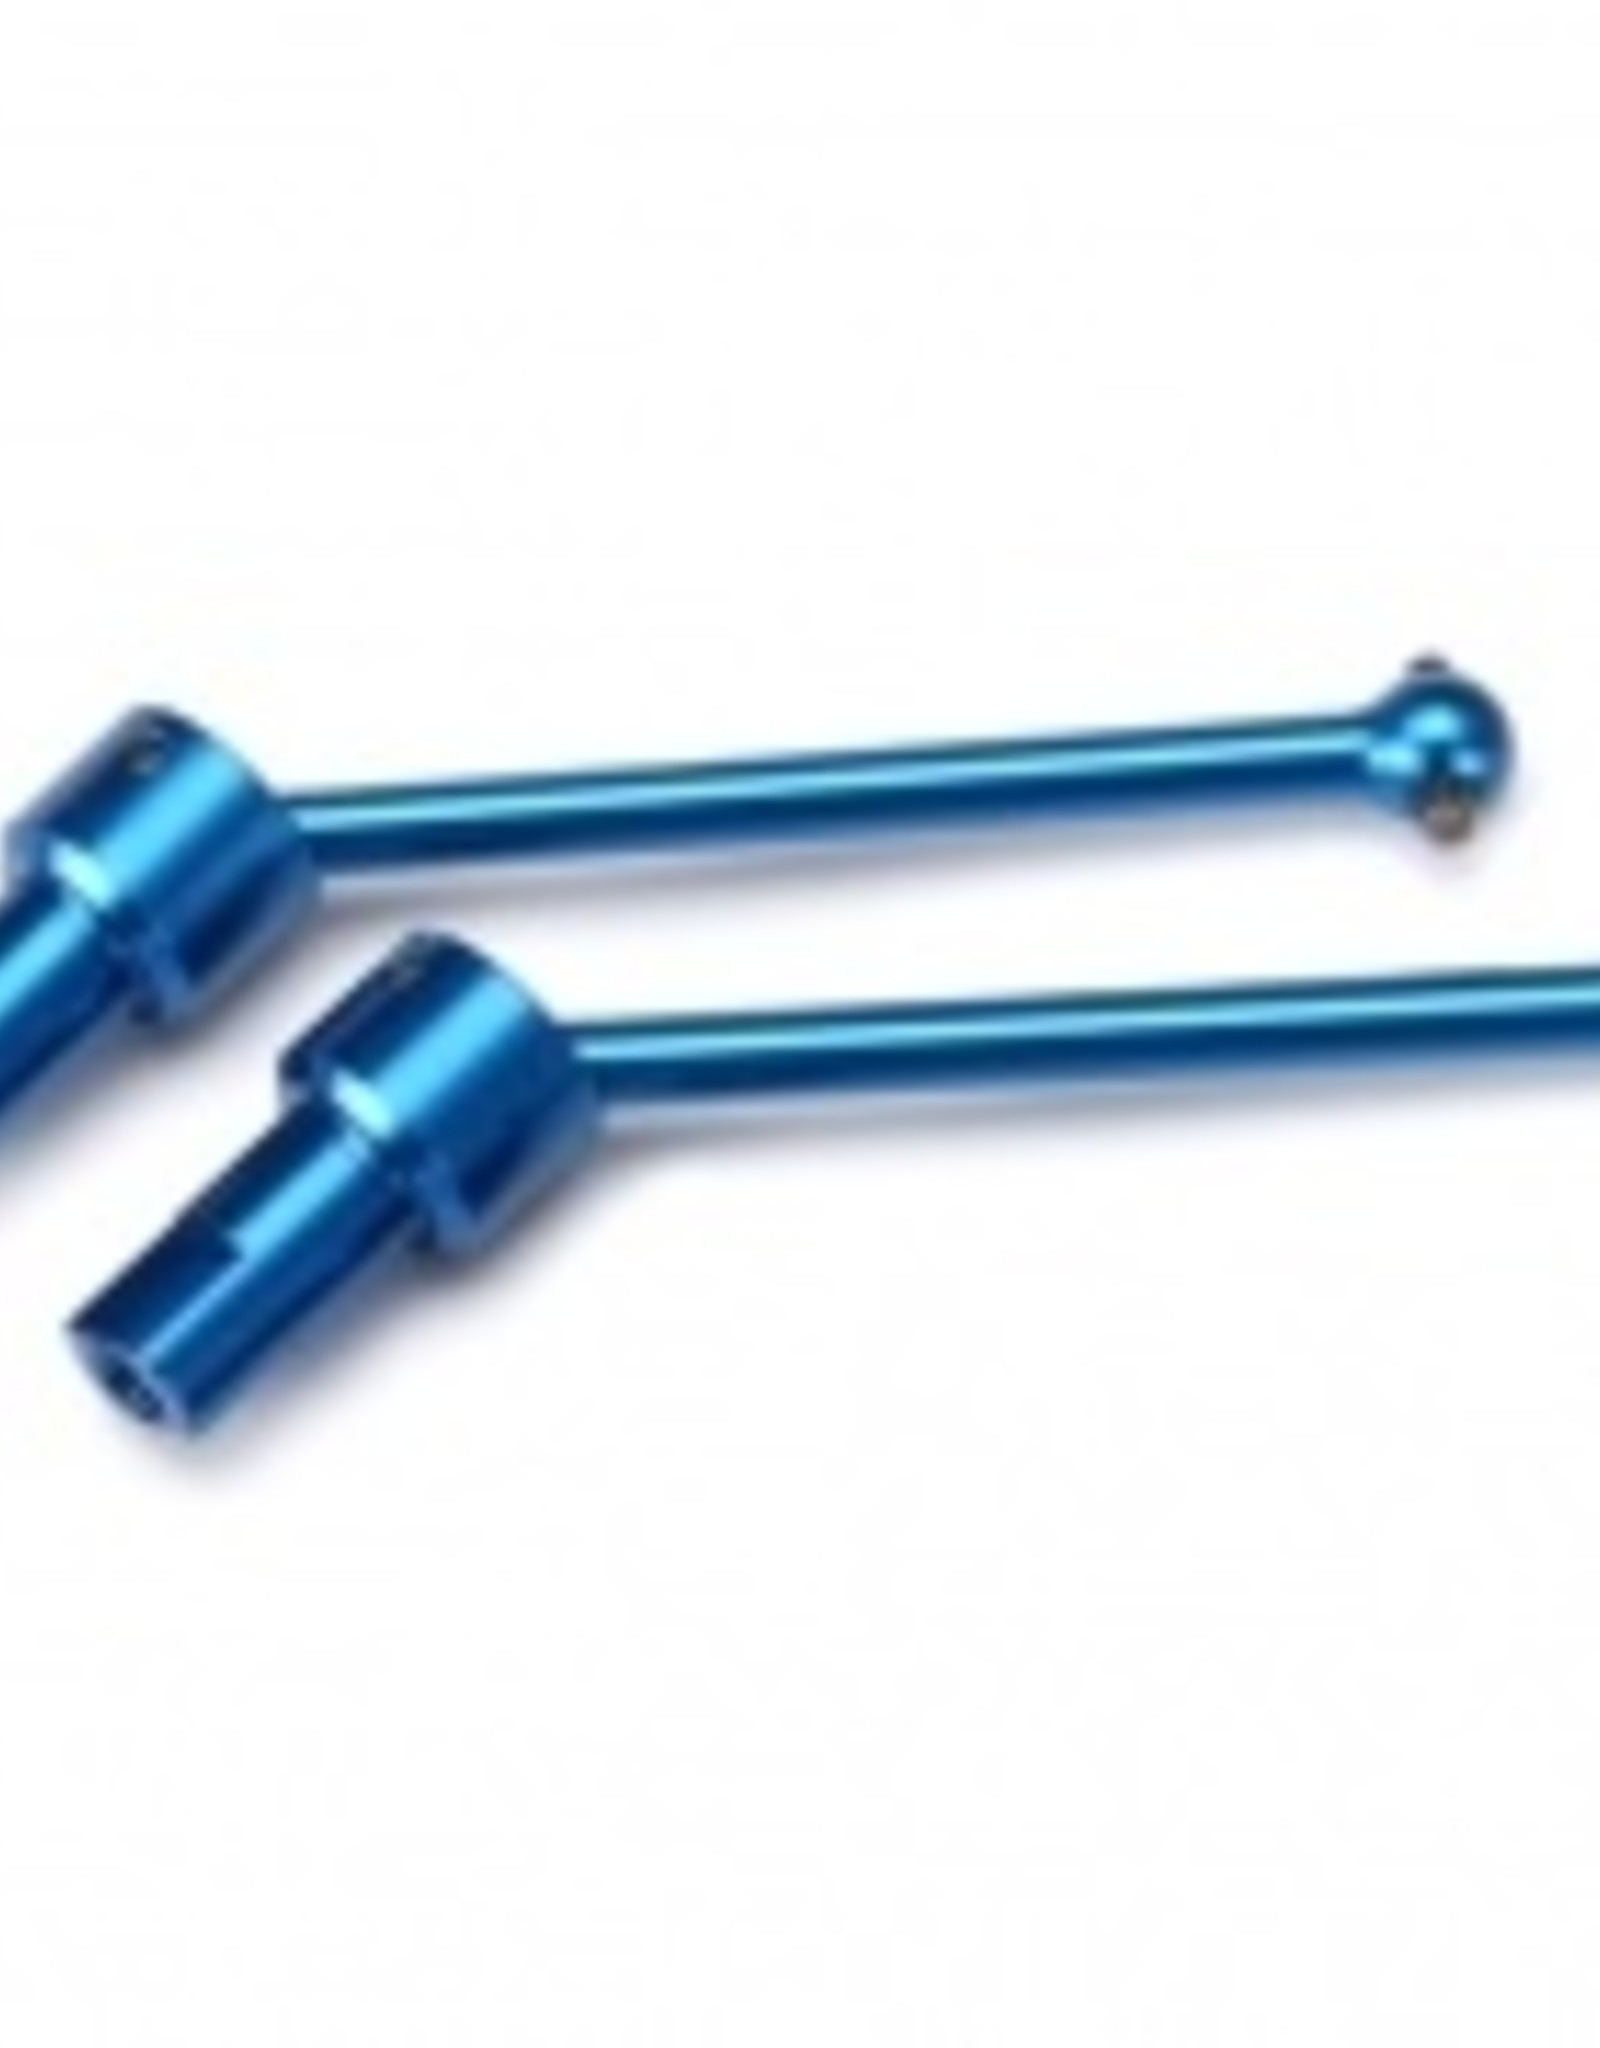 Traxxas LaTrax Teton/ SST Driveshaft assembly, front & rear, 6061-T6 aluminum (blue-anodized) (2)